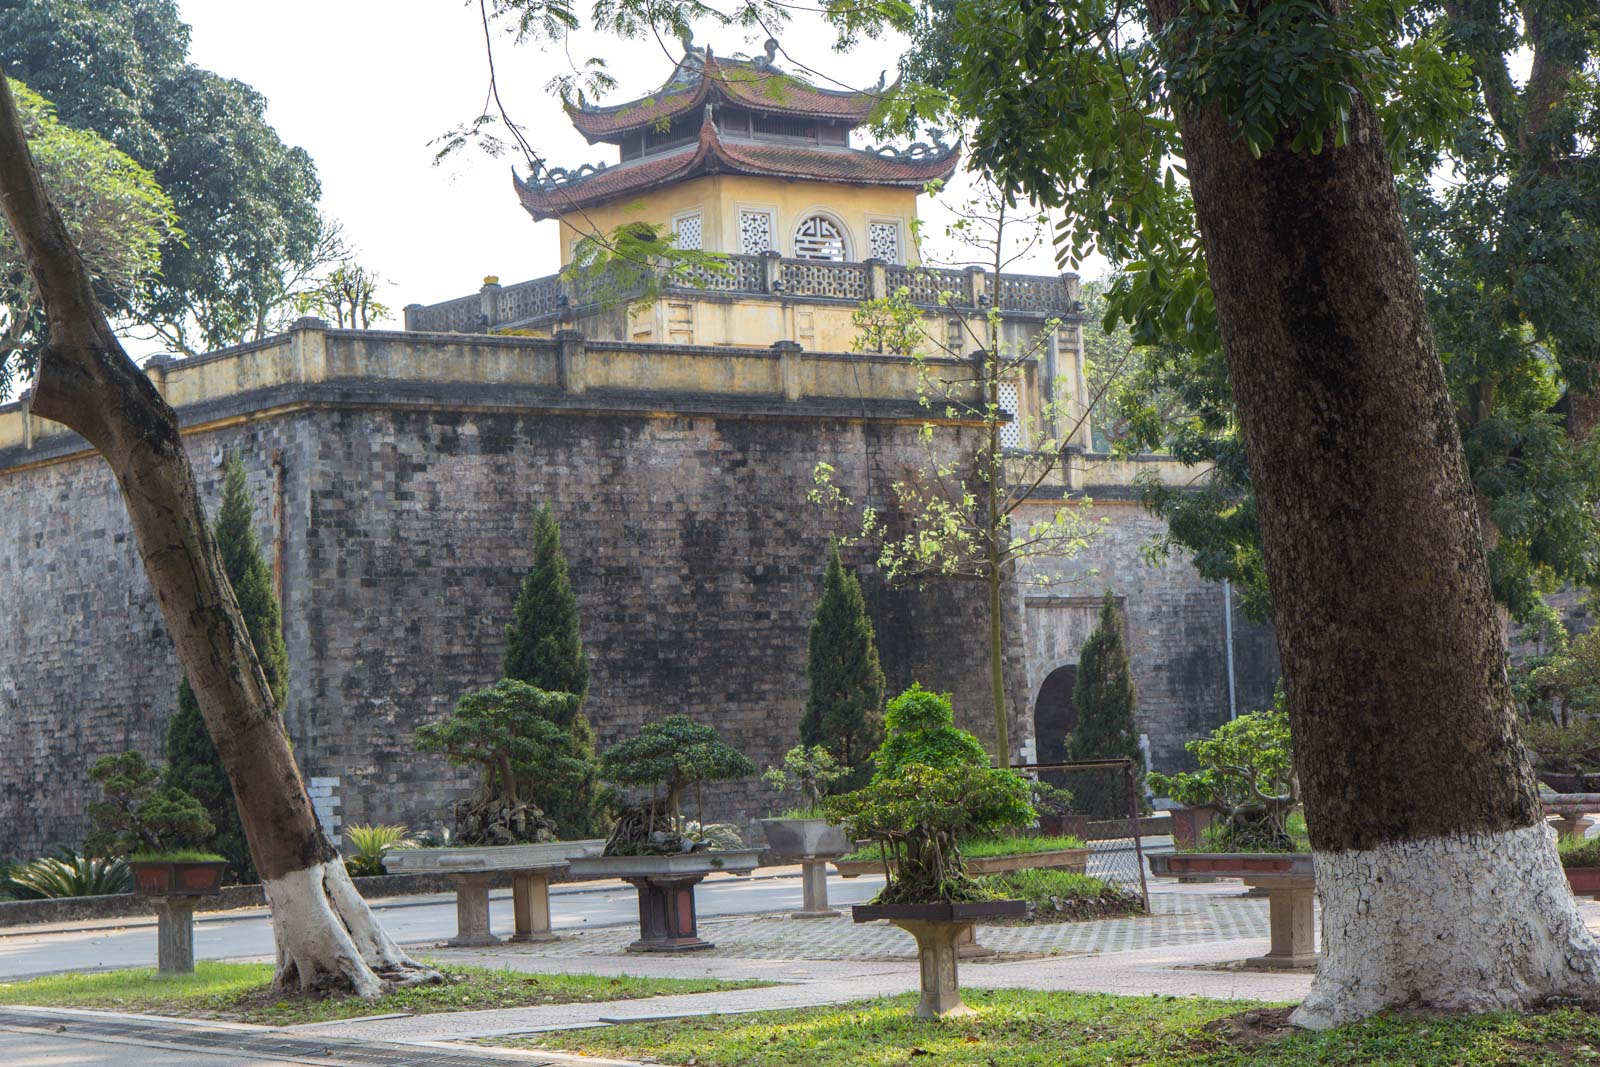 Things to see in Hanoi, Vietnam